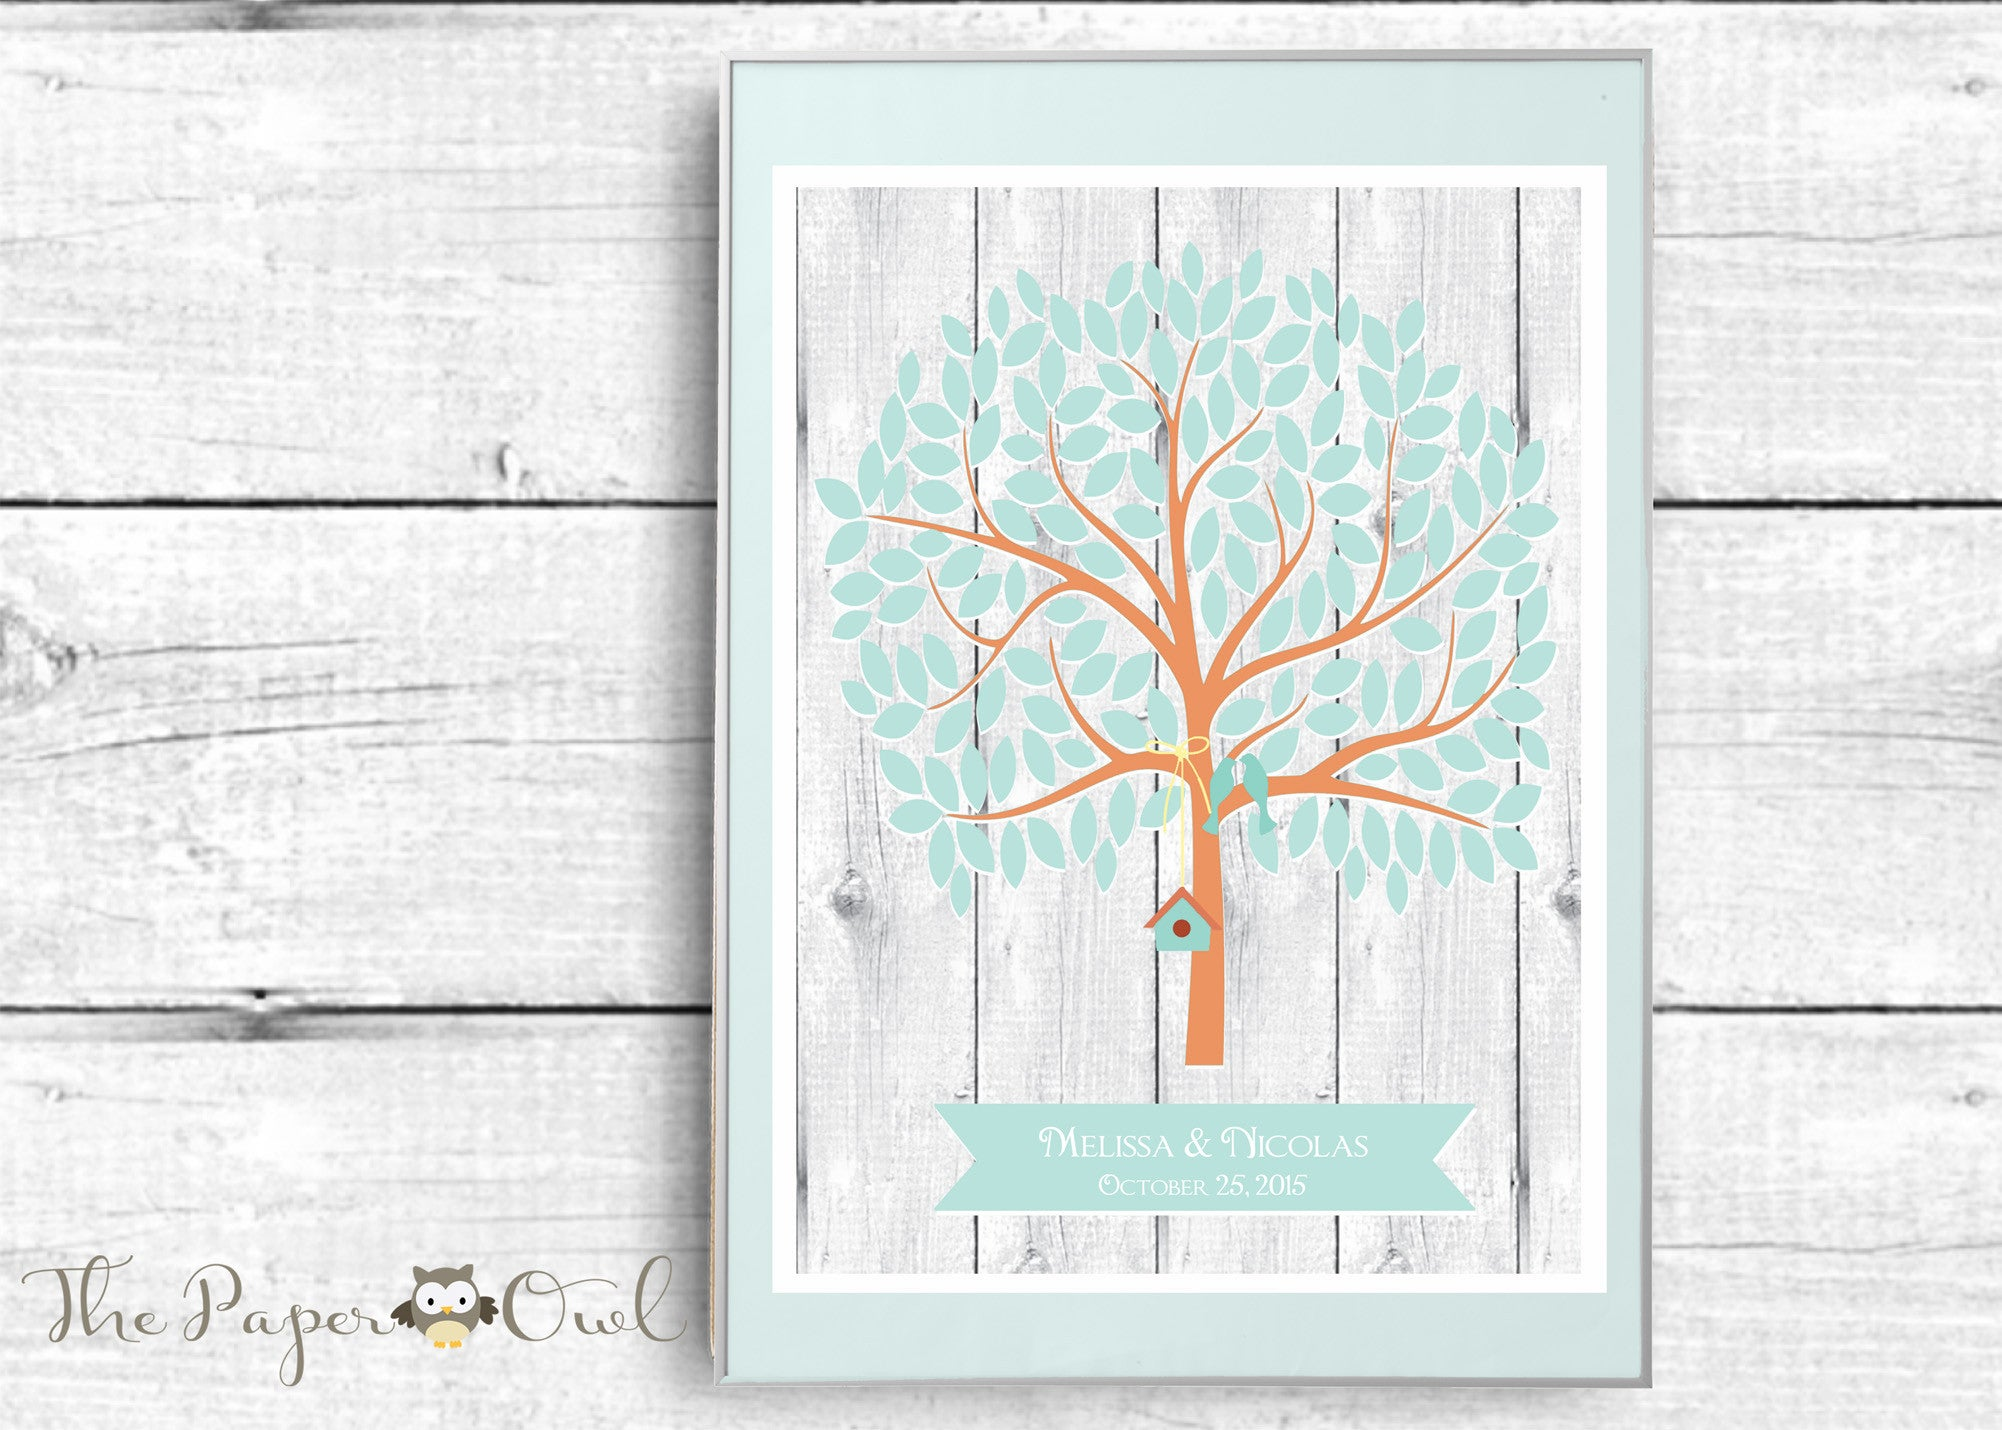 Wedding Guest Book Alternative poster, Tree with 155 empty blue Leaves, personalize with names and date - The Paper Owl